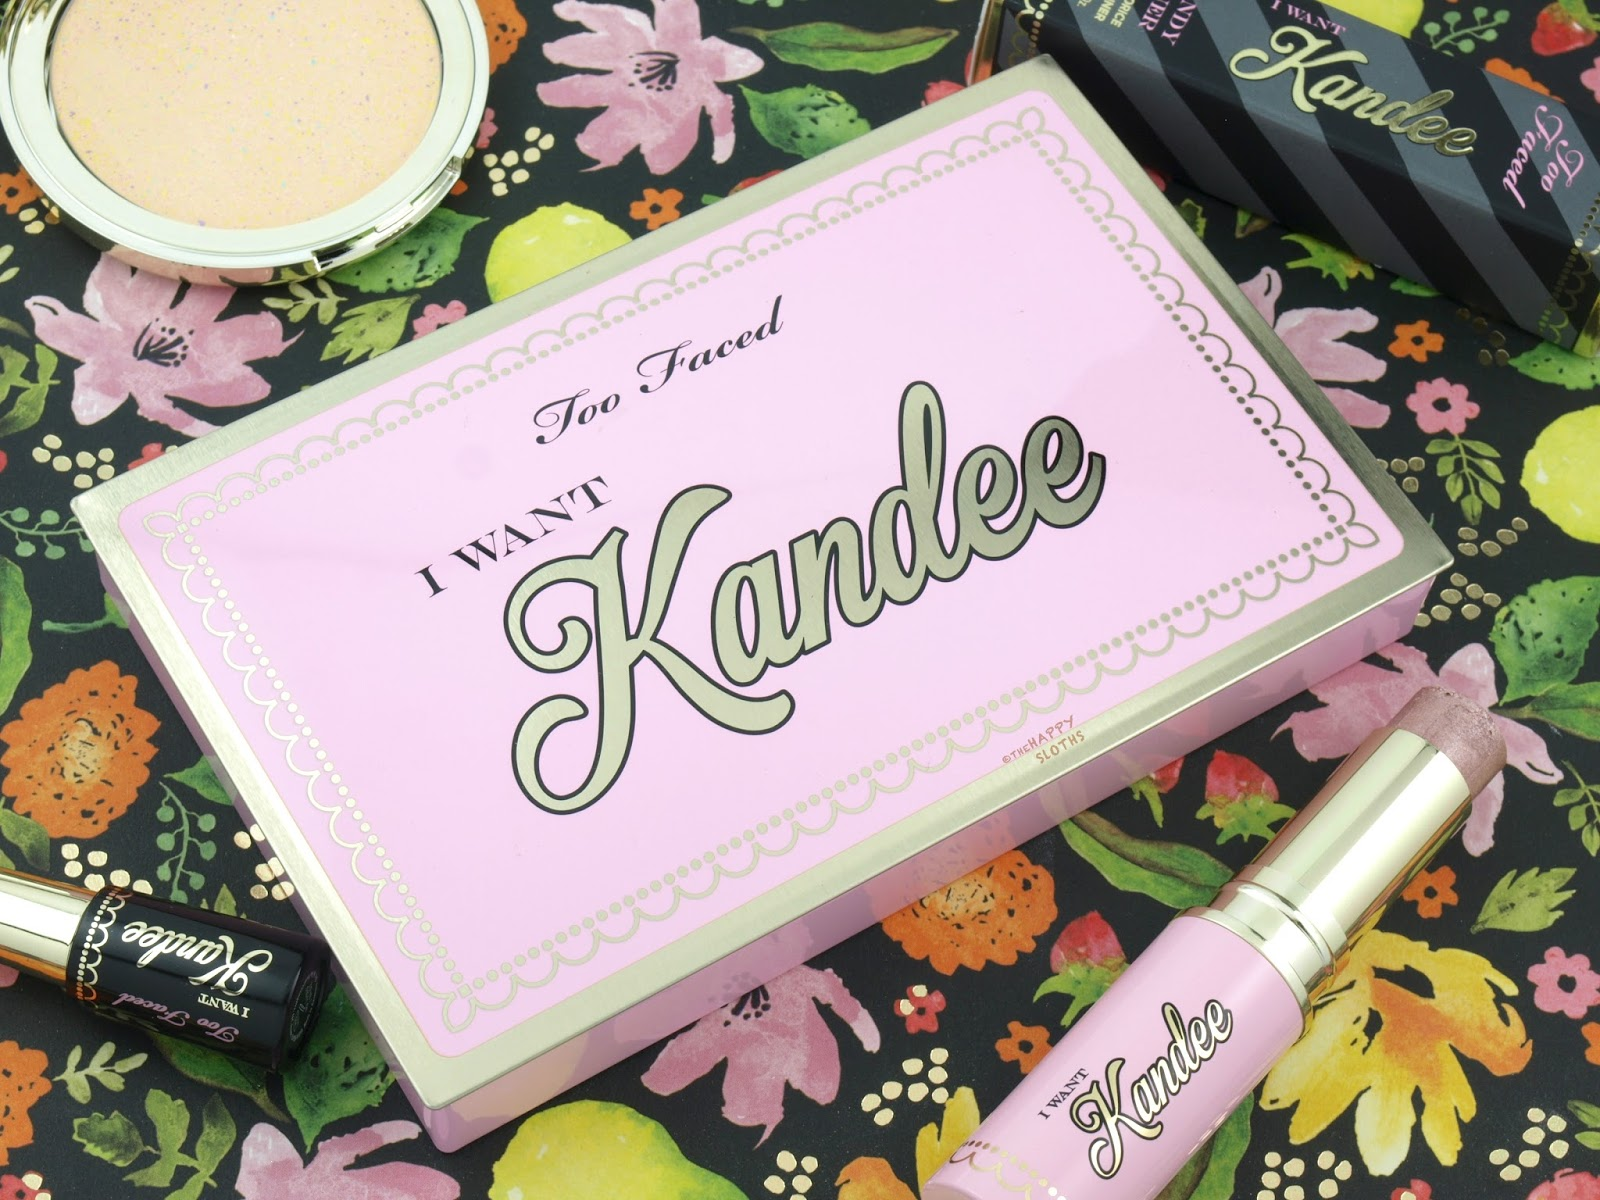 Too Faced x Kandee Johnson | I Want Kandee Eyeshadow Palette: Review and Swatches